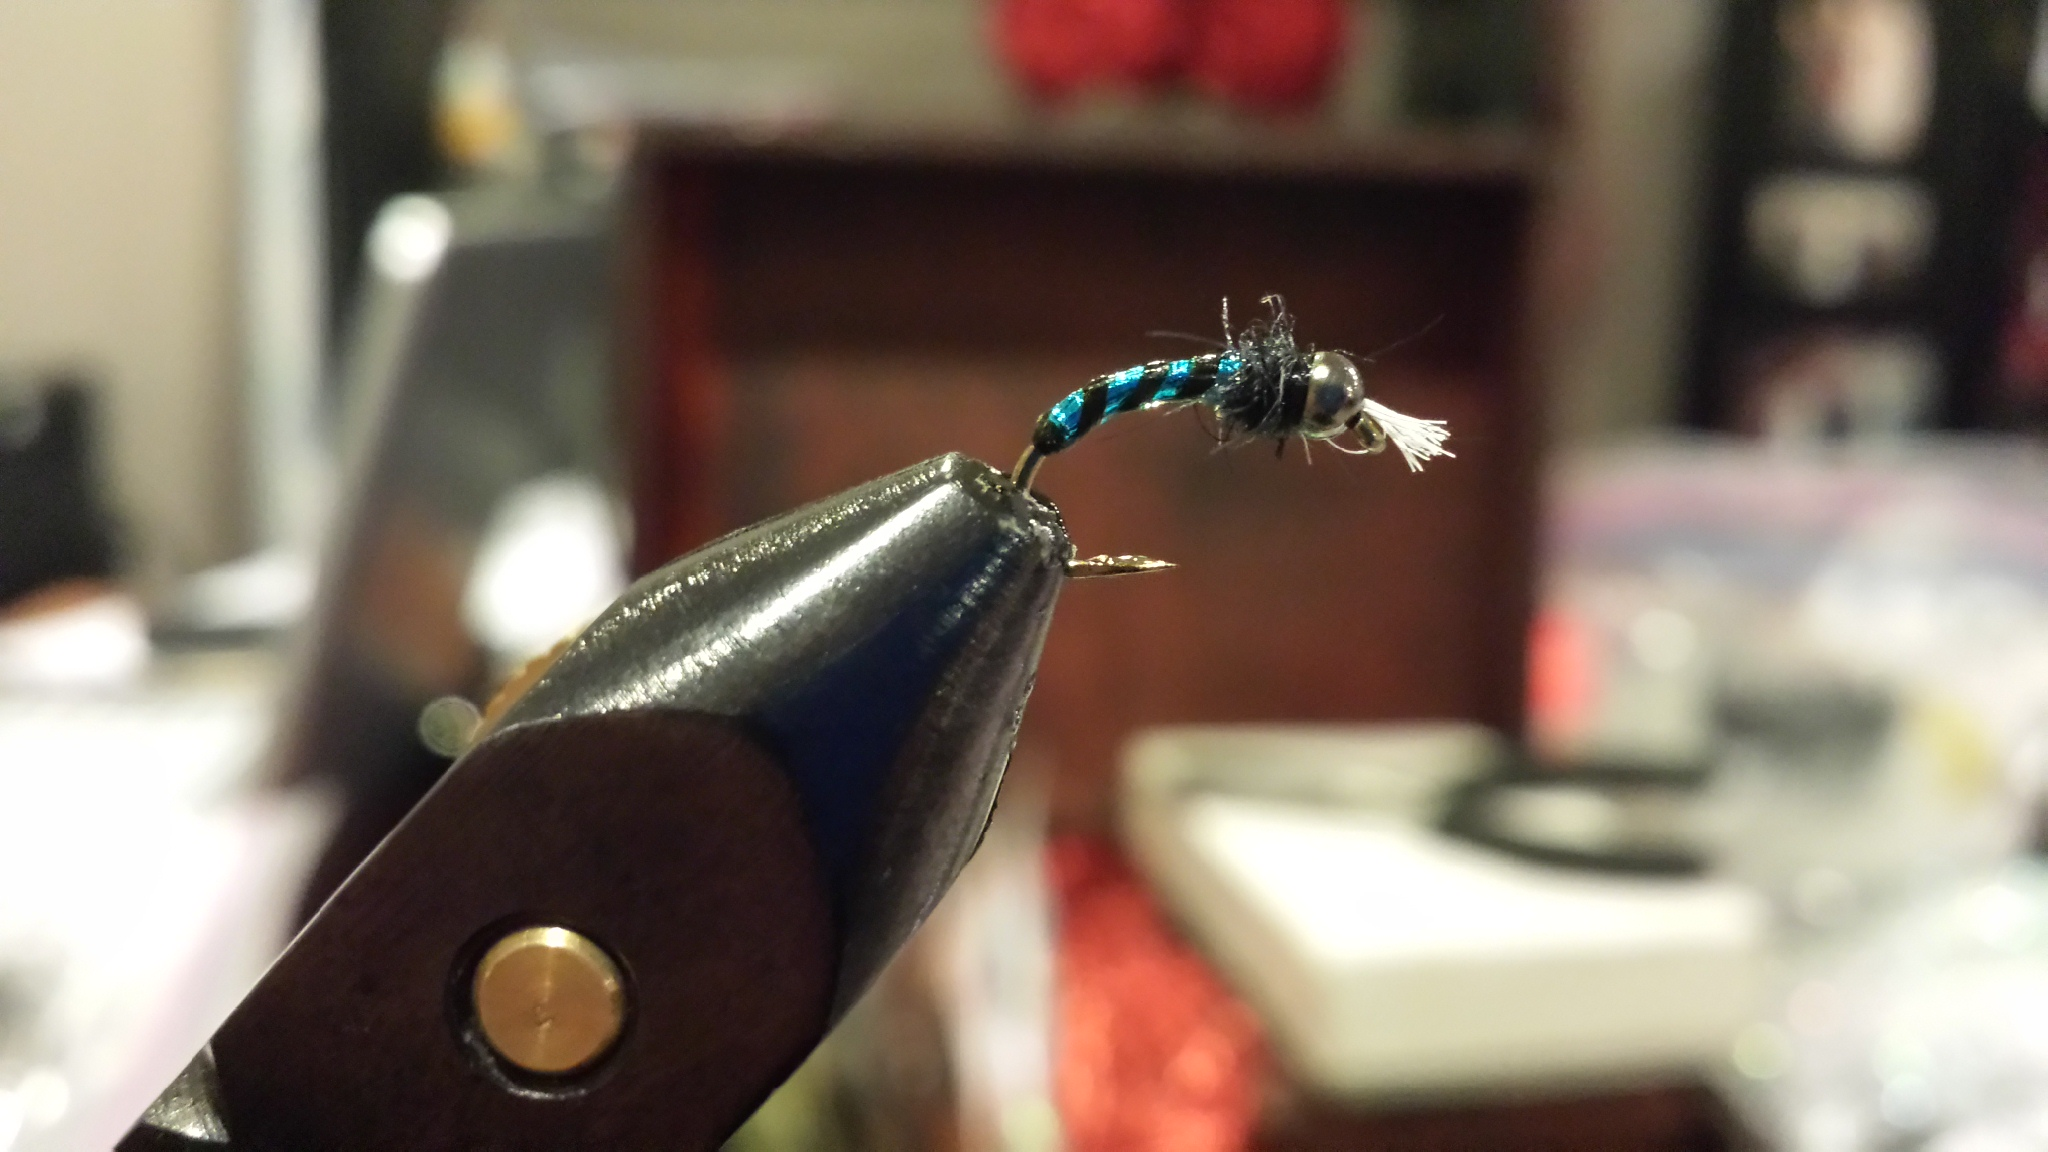 Blue Flash Chironomid DONE!